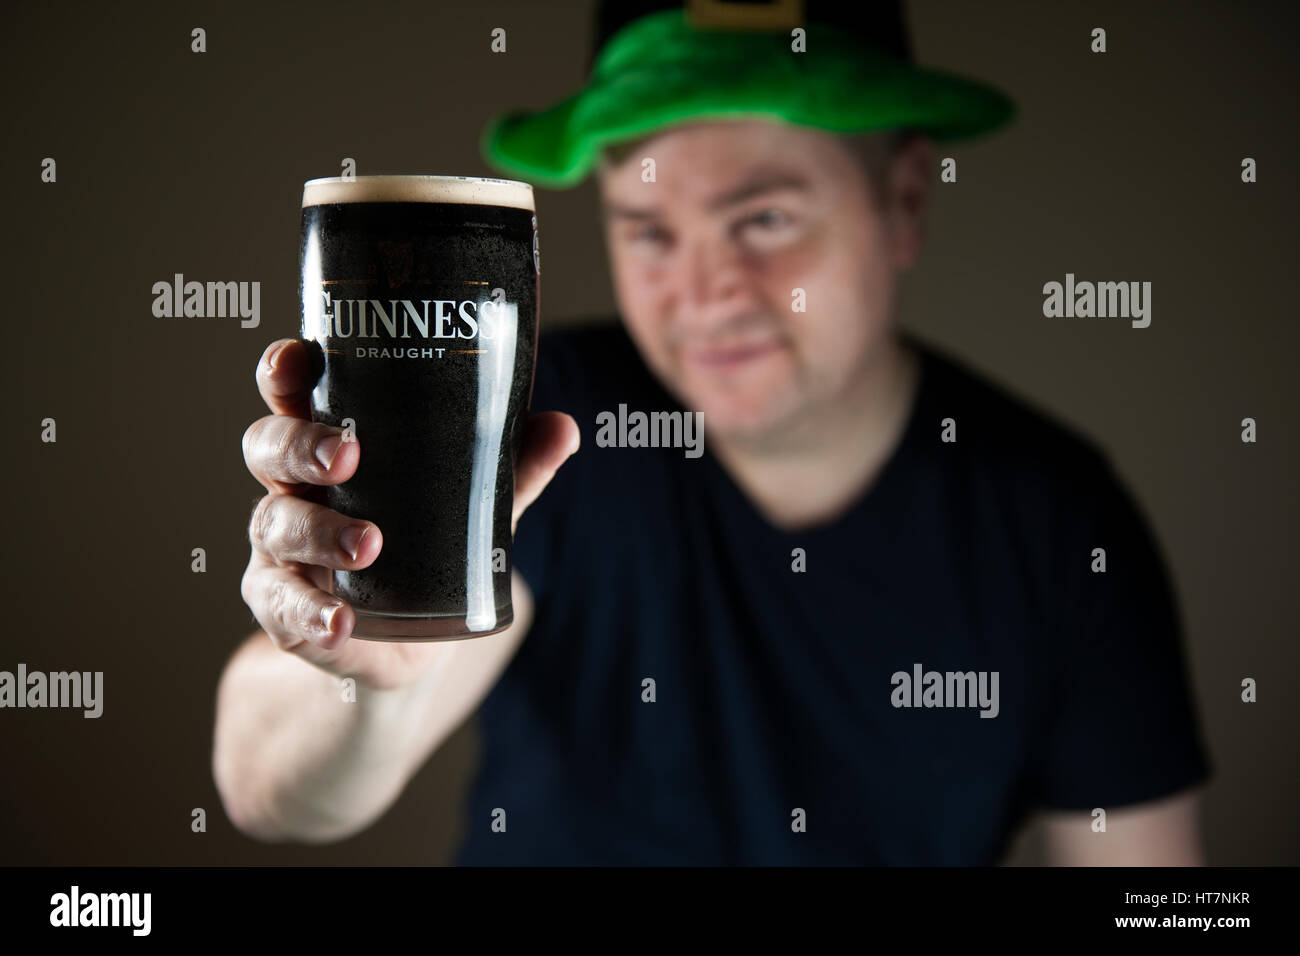 A man wearing a leprechaun hat on Saint Patrick's Day holding a pint of Guinness stout towards the camera Stock Photo